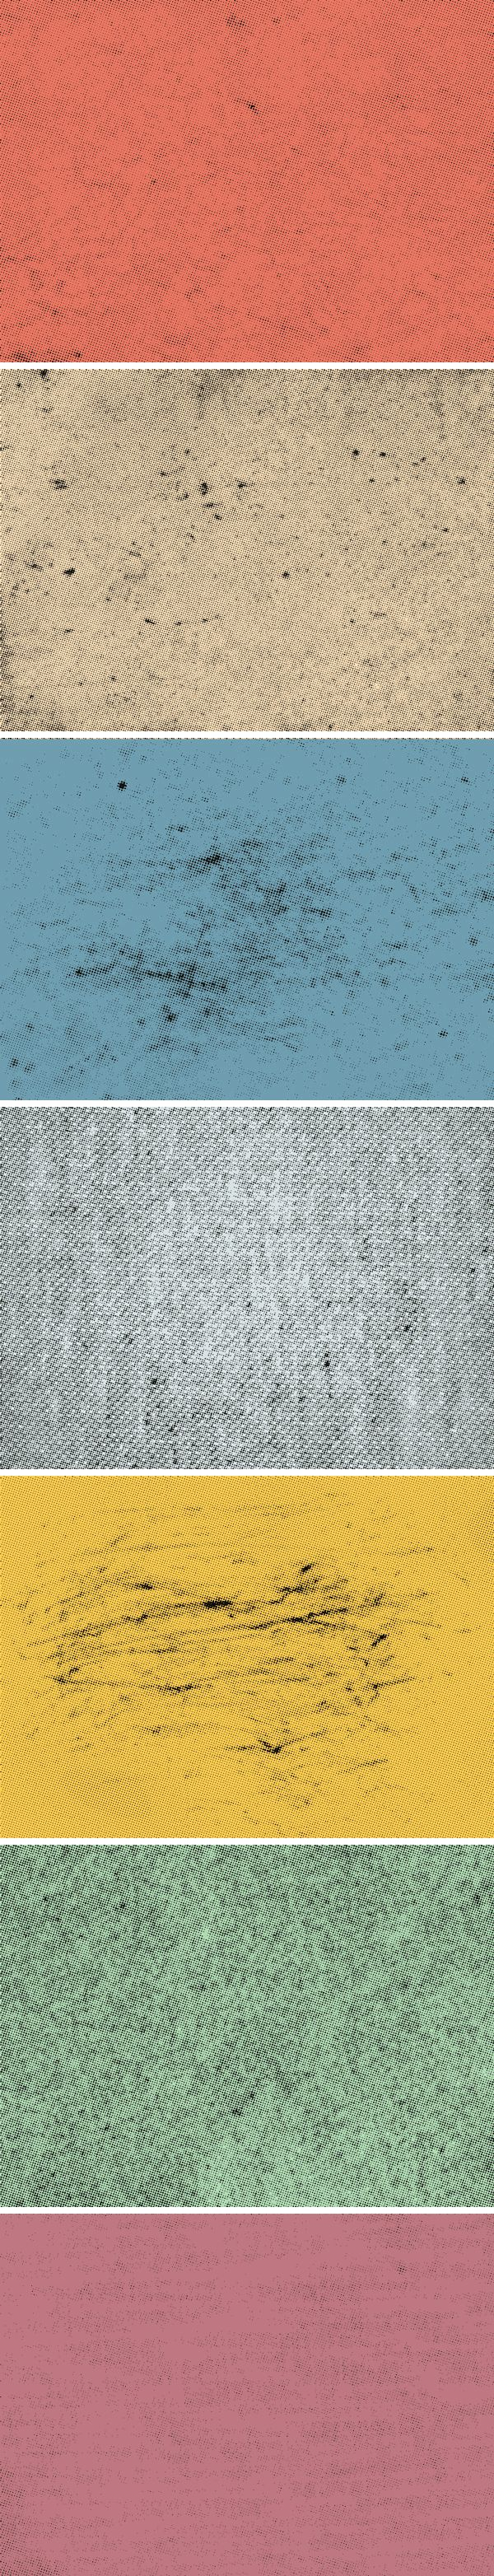 7 Halftone Textures | GraphicBurger